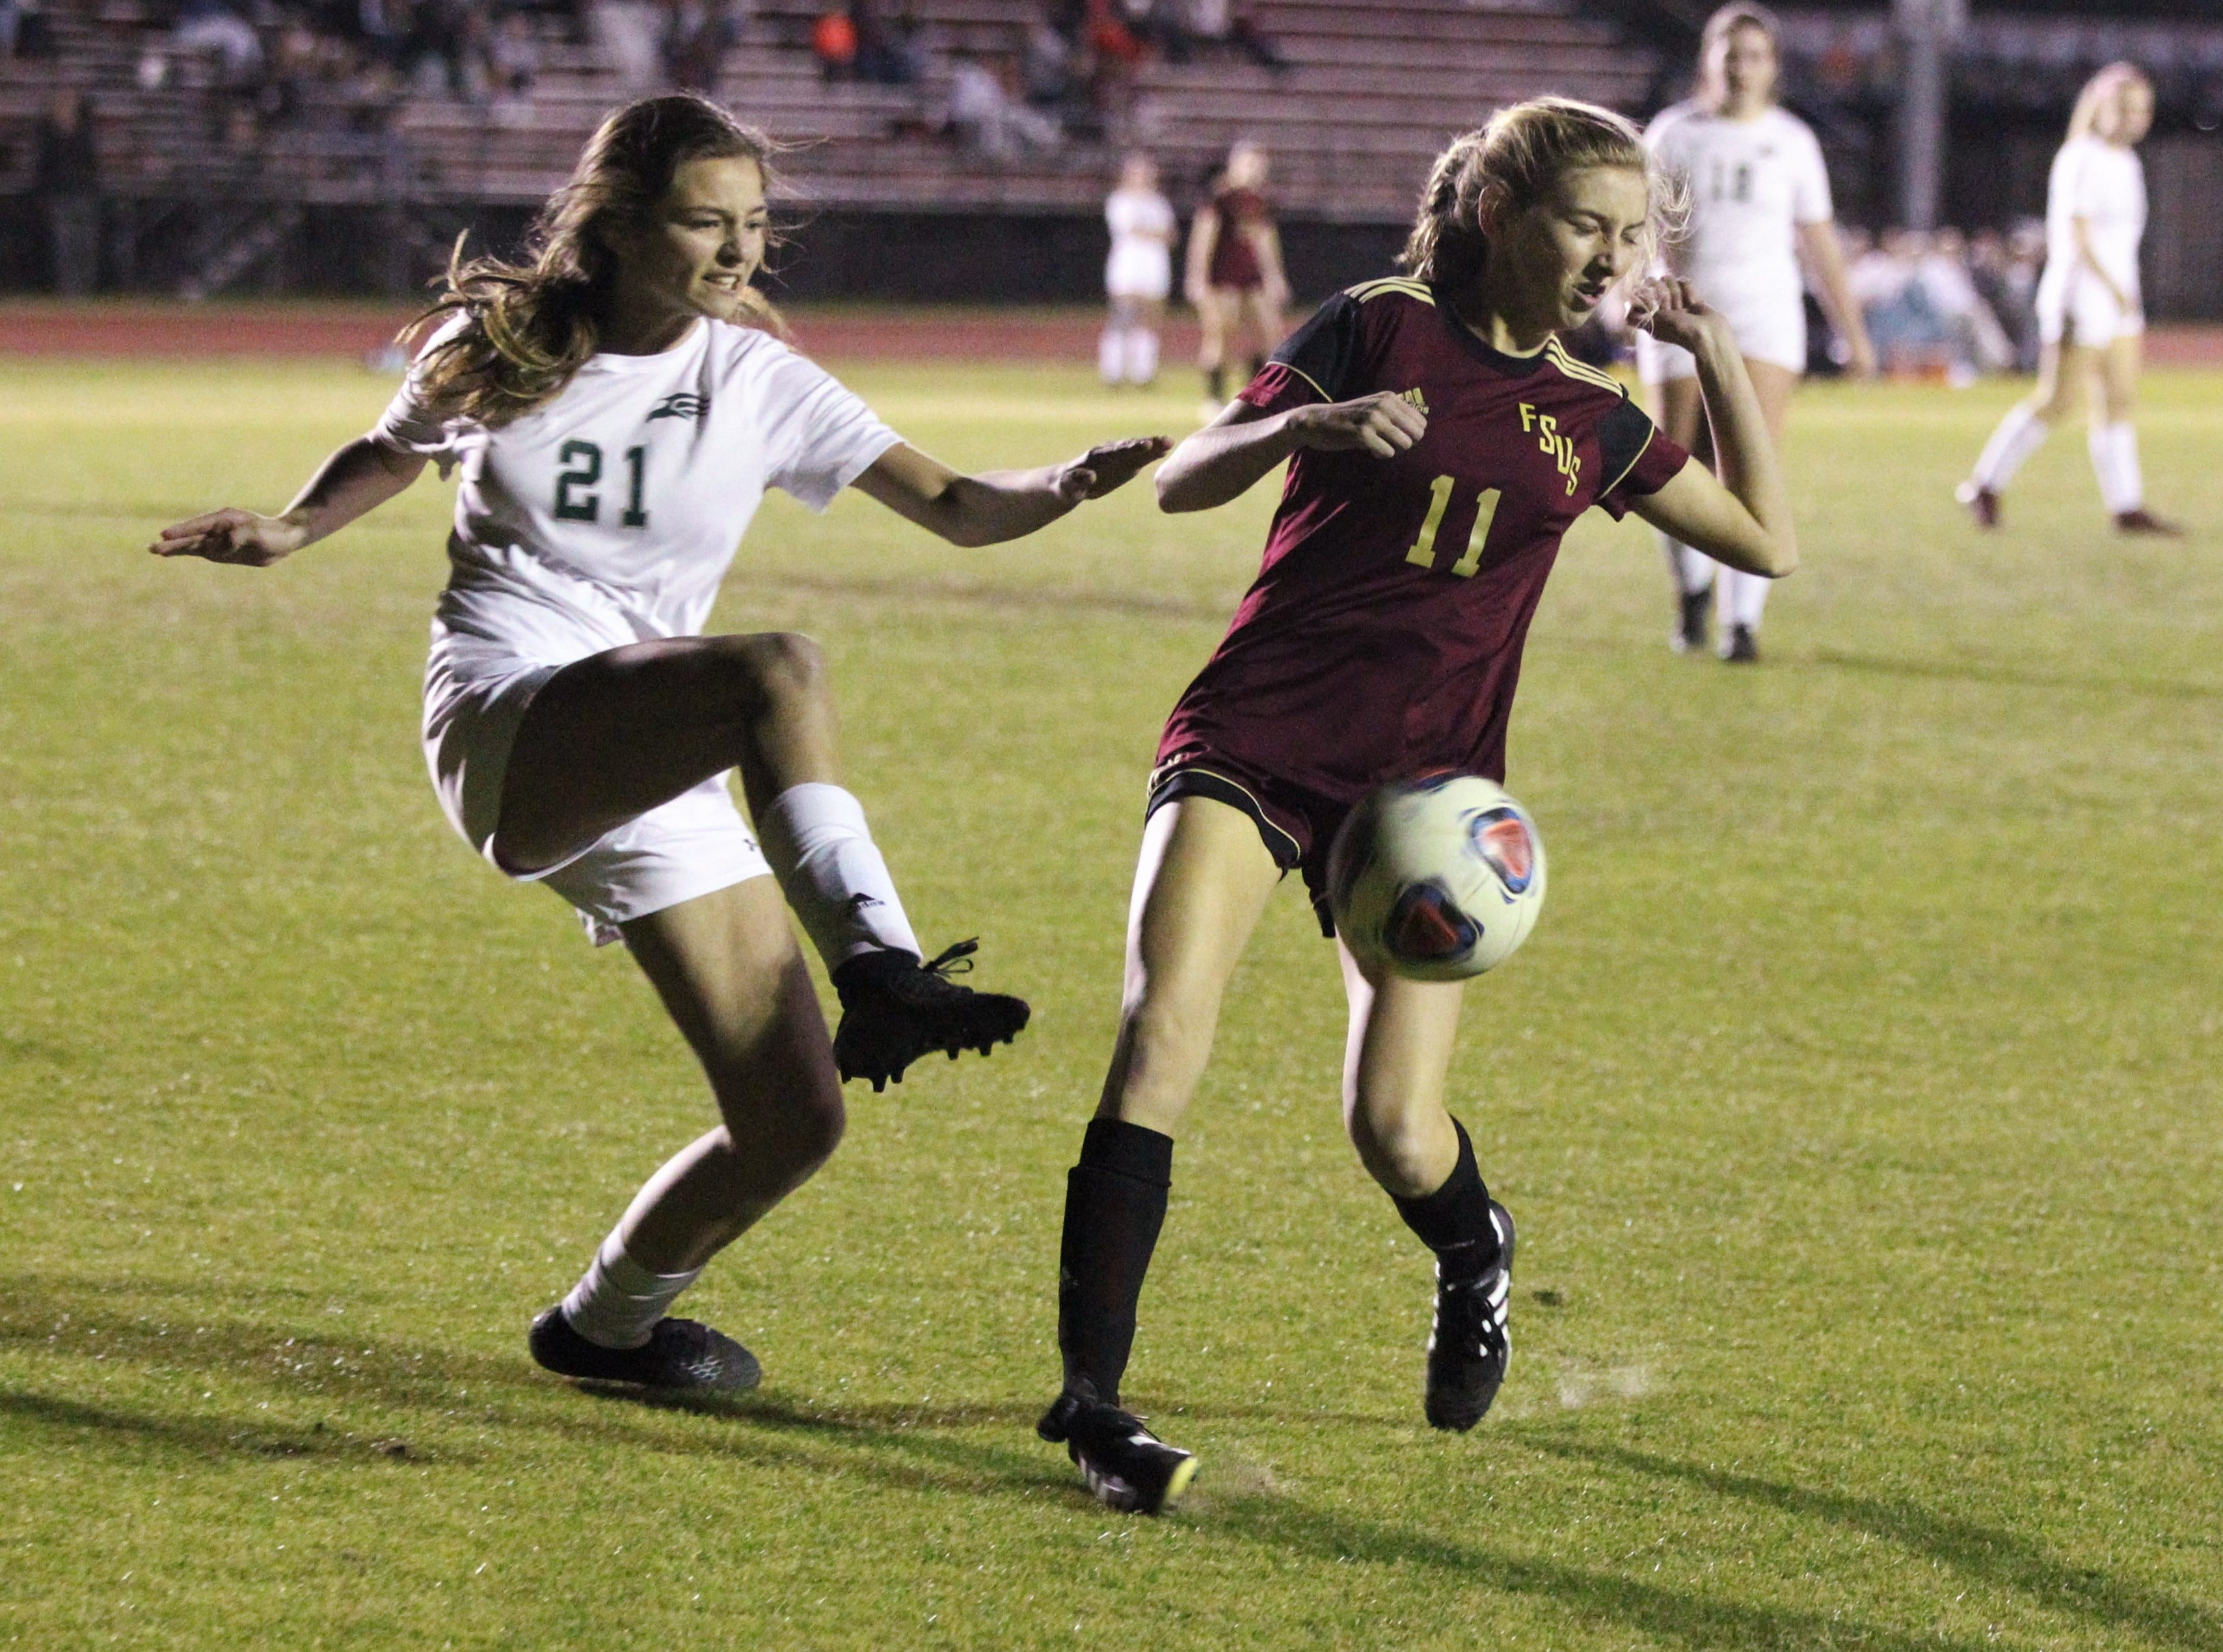 Florida High's Madison Brown watches out for a clearance attempt as South Walton edged the Seminoles 5-4 in a penalty-kick shootout during a Region 1-2A semifinal on Feb. 8, 2019.